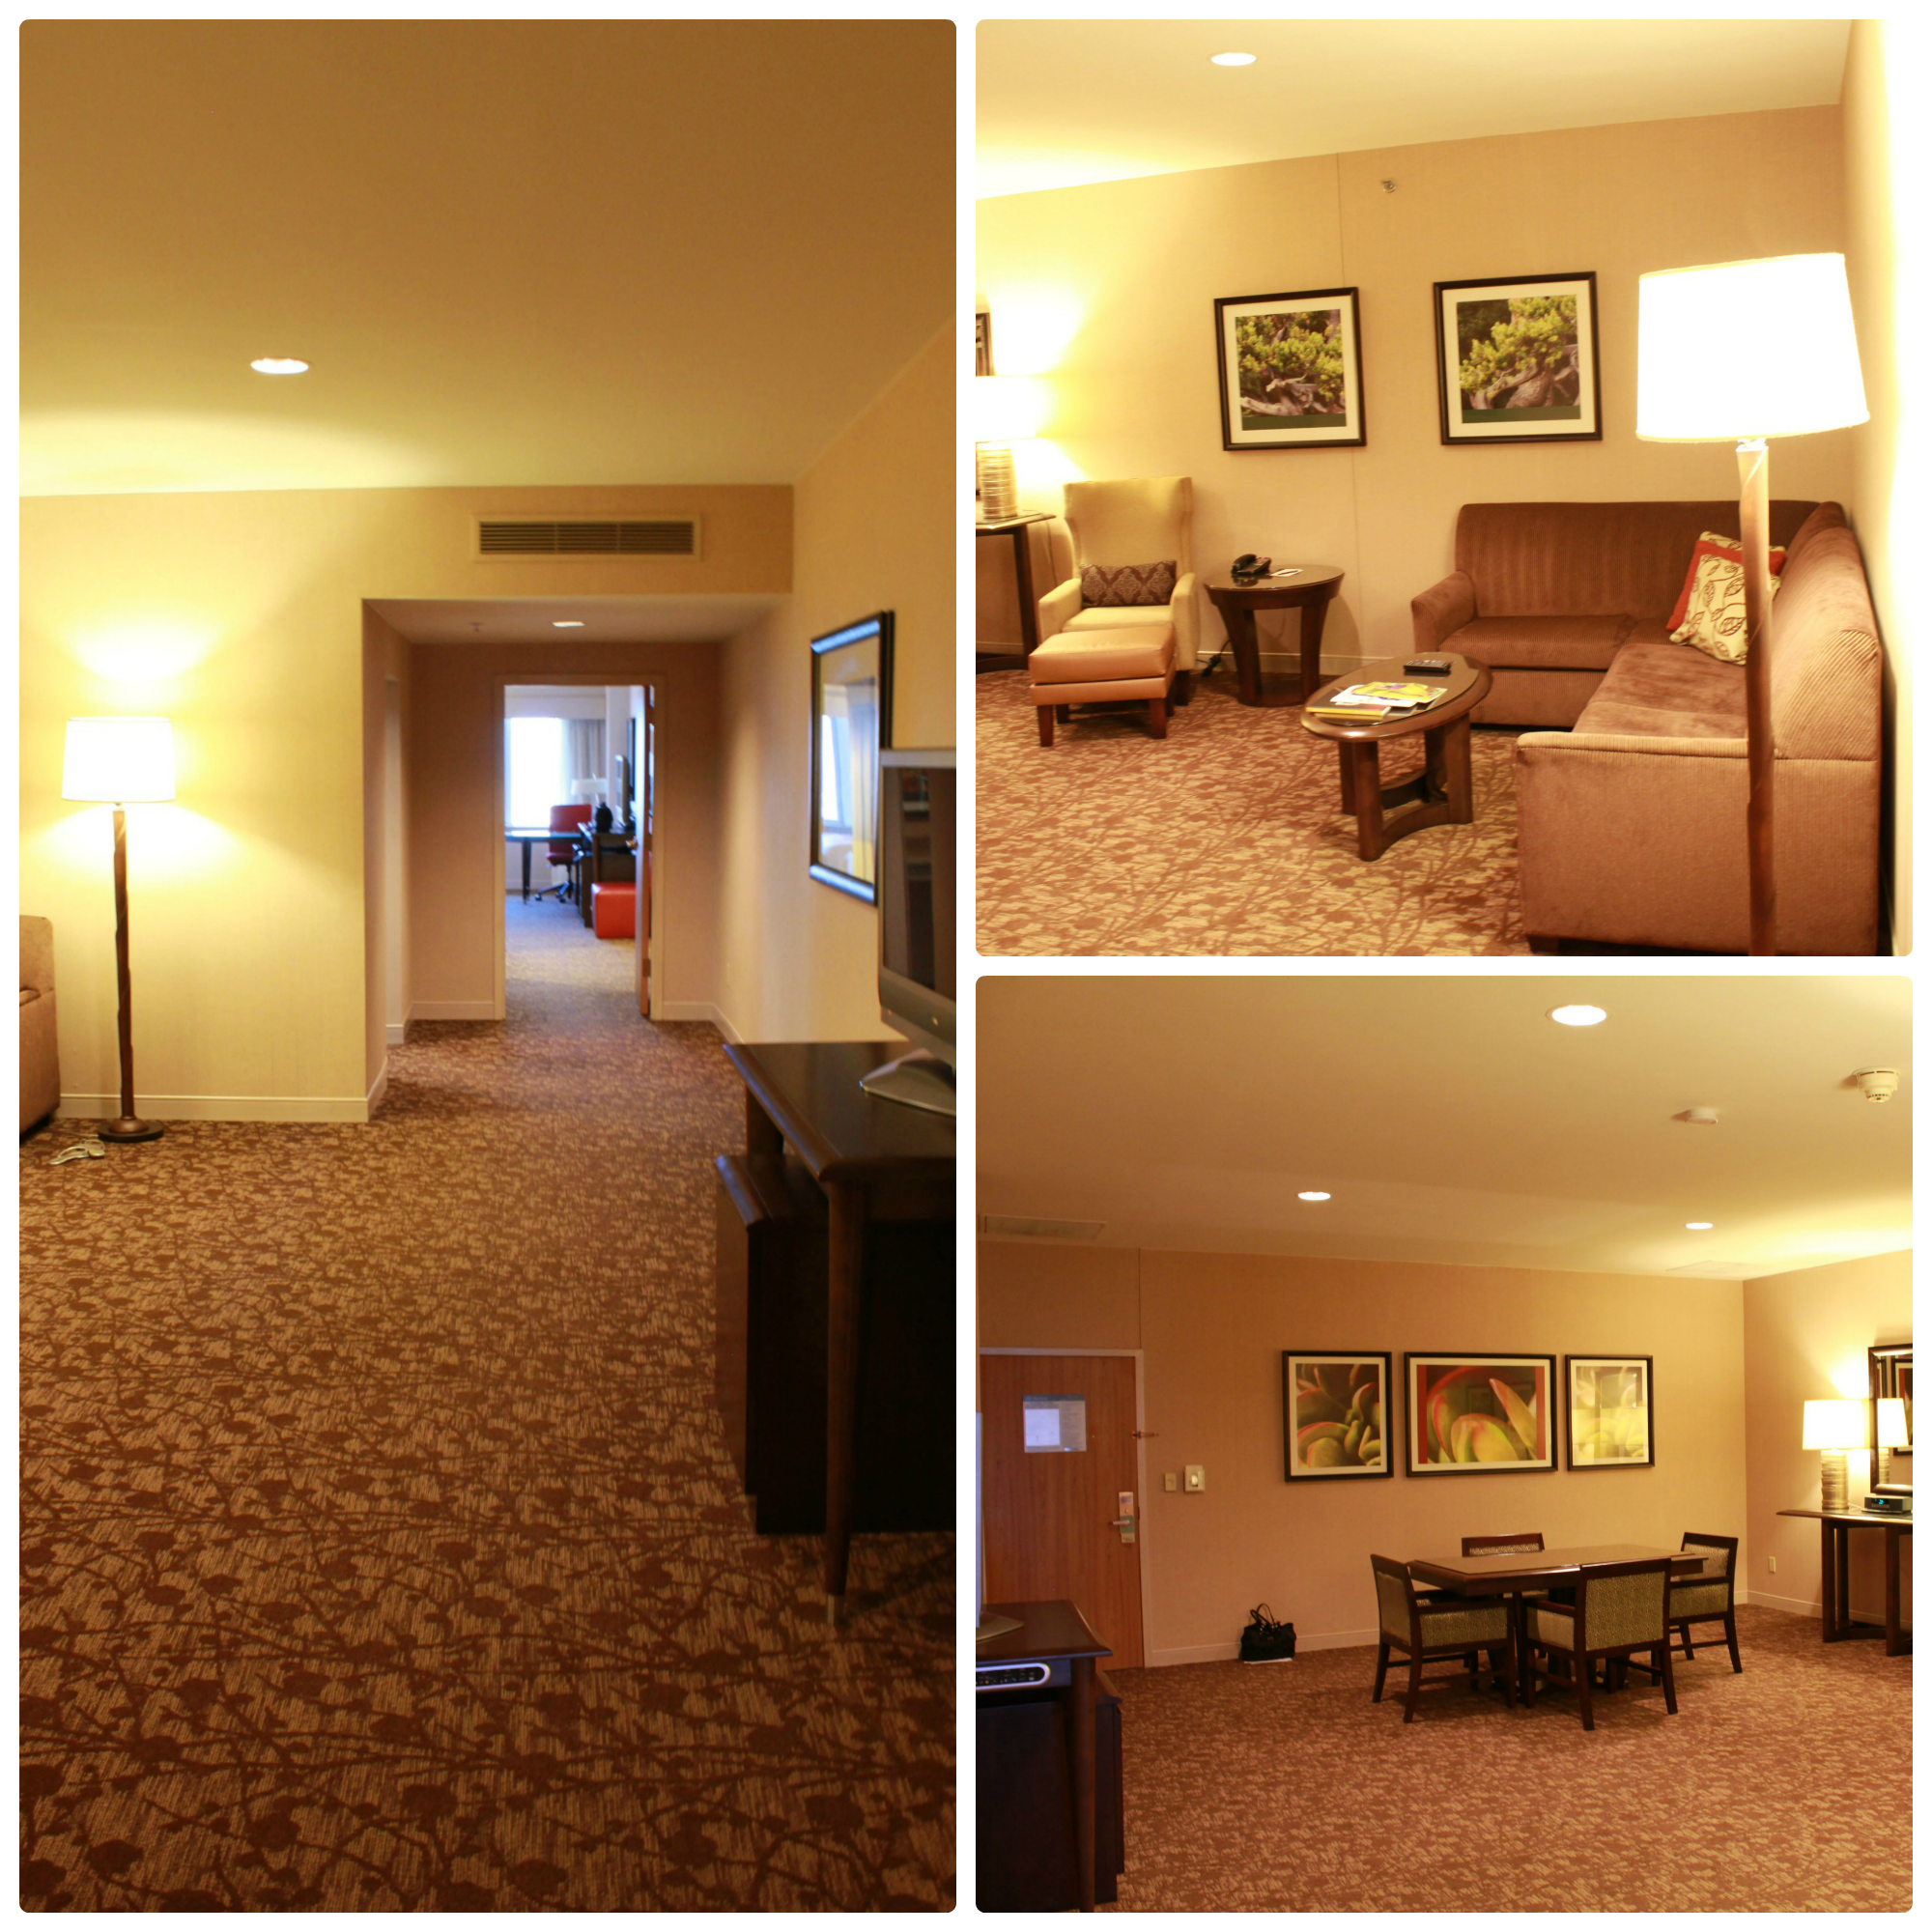 A Hotel Simply The Dallas Suite At The Sheraton Dallas Hotel Simply Being Mommy